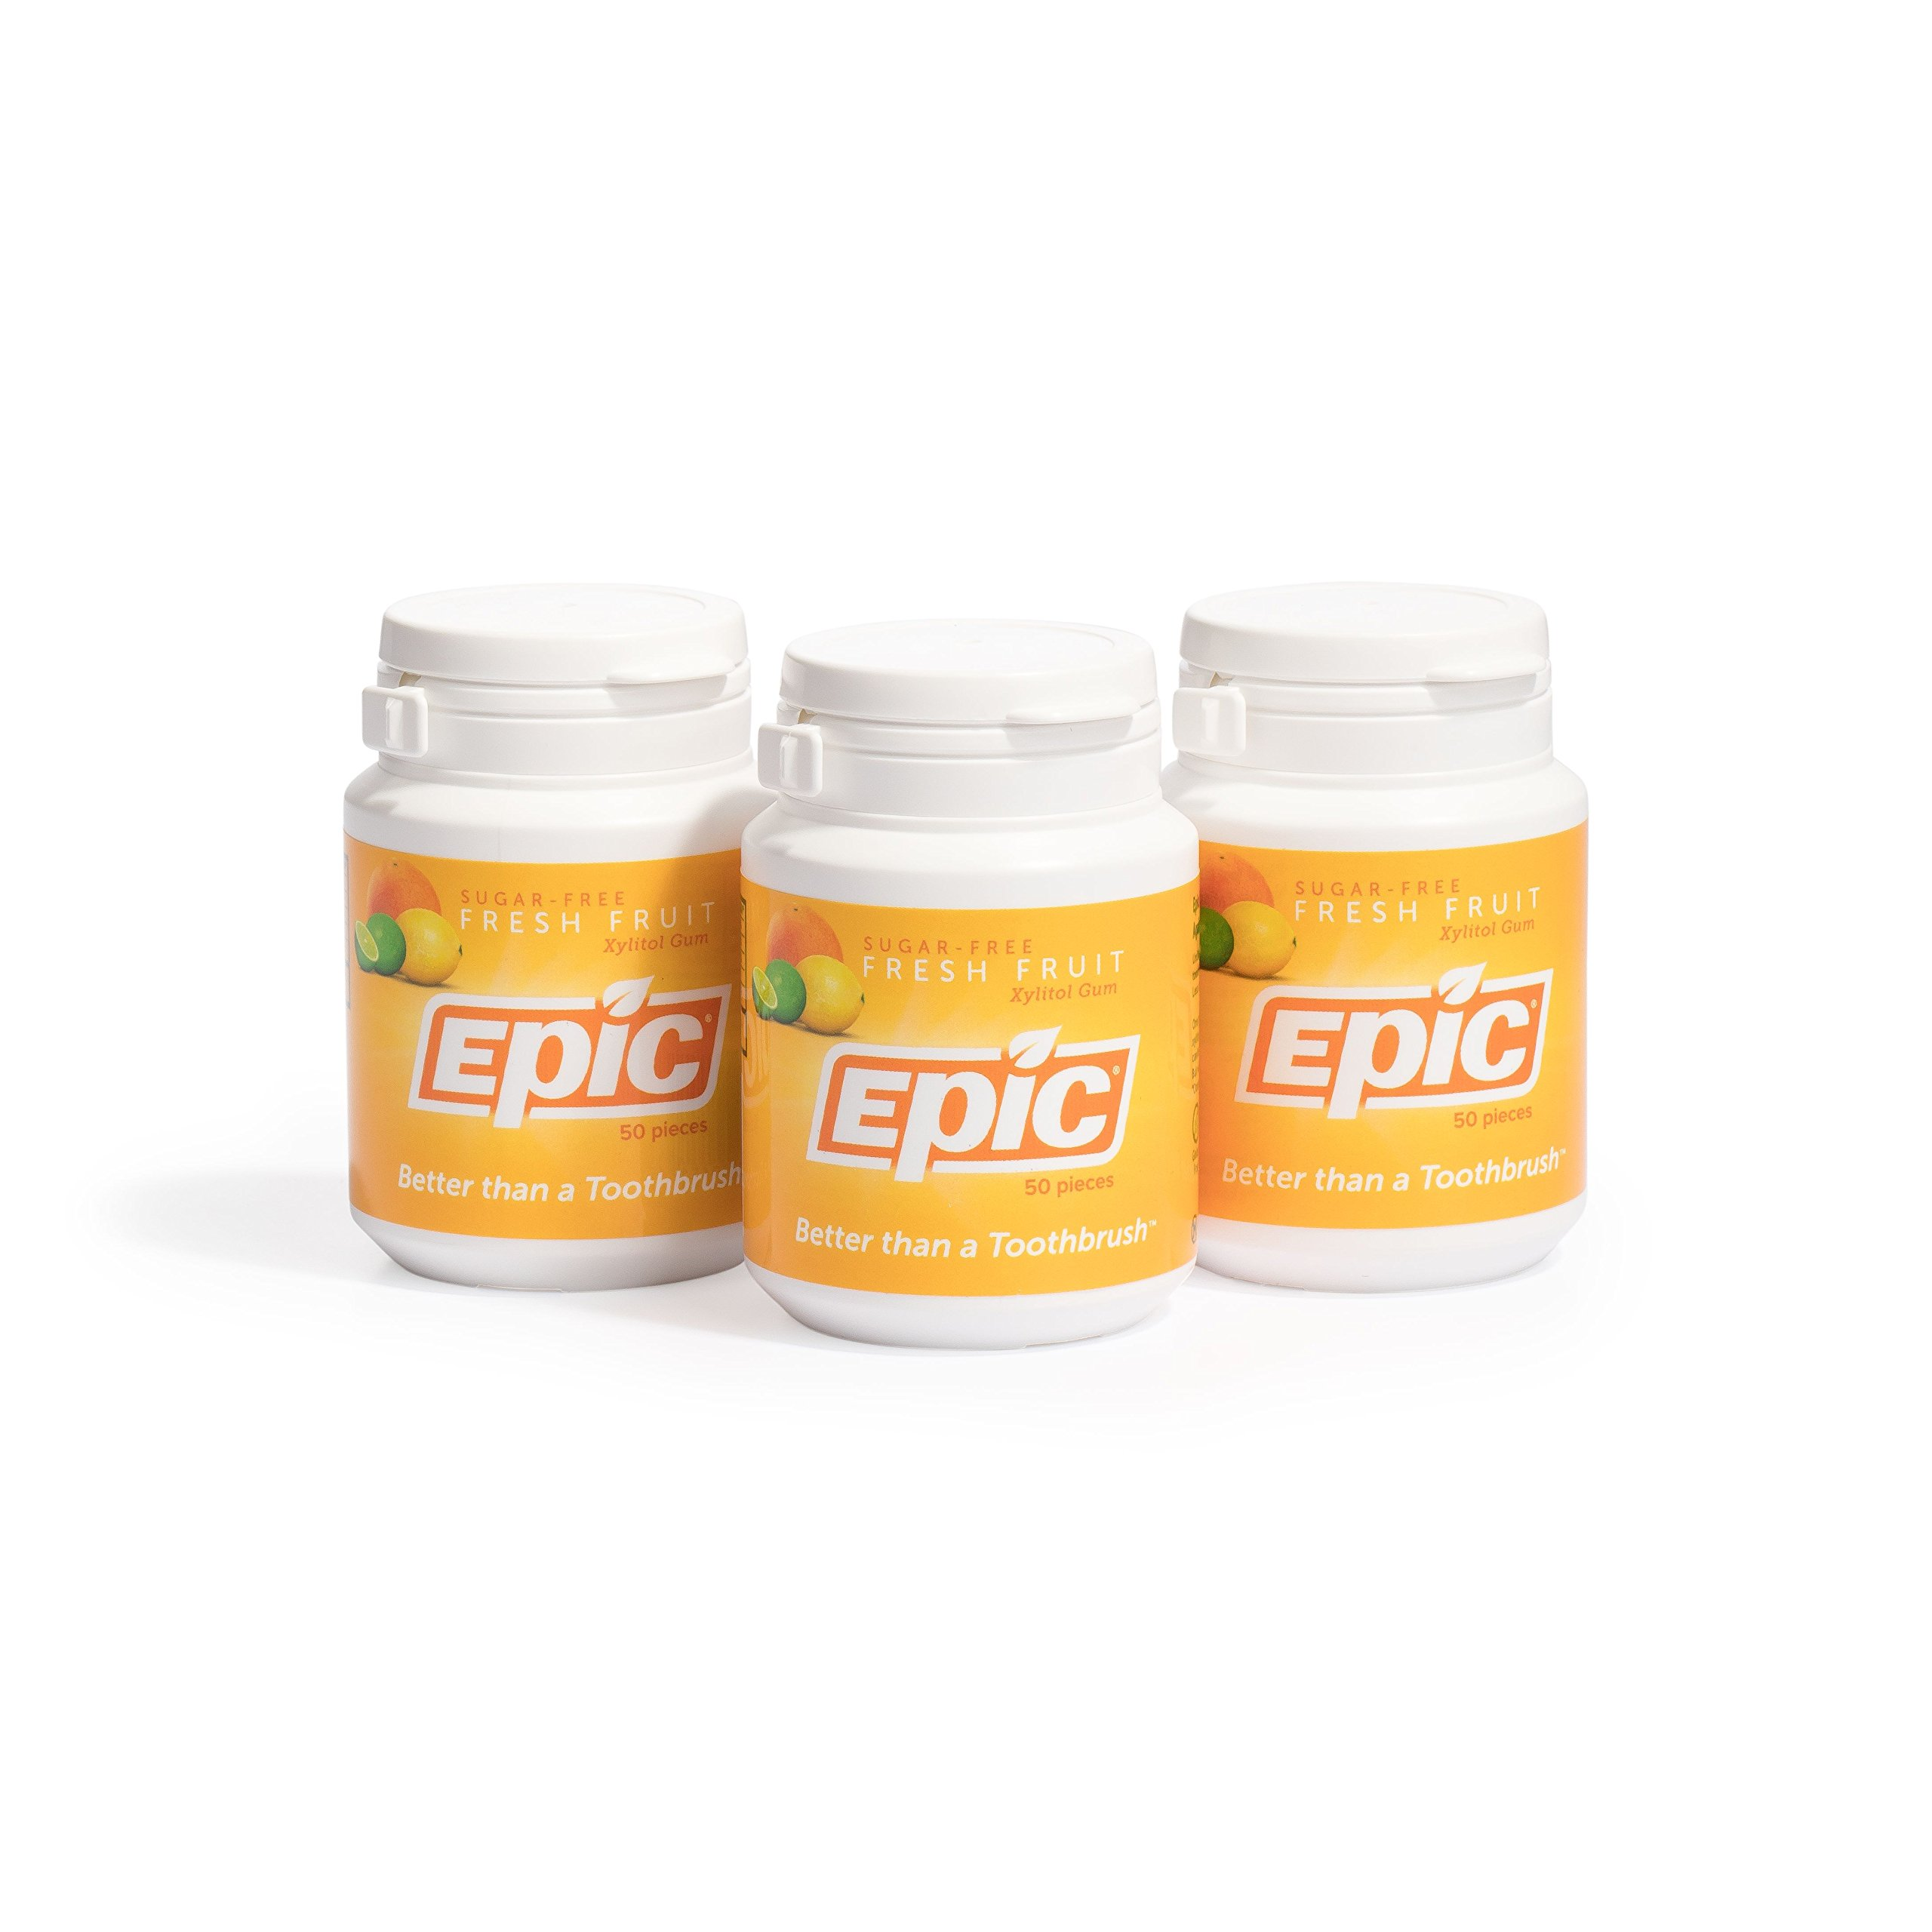 Epic Dental 100% Xylitol Sweetened Gum, Fresh Fruit, 50 Count (Pack of 3)